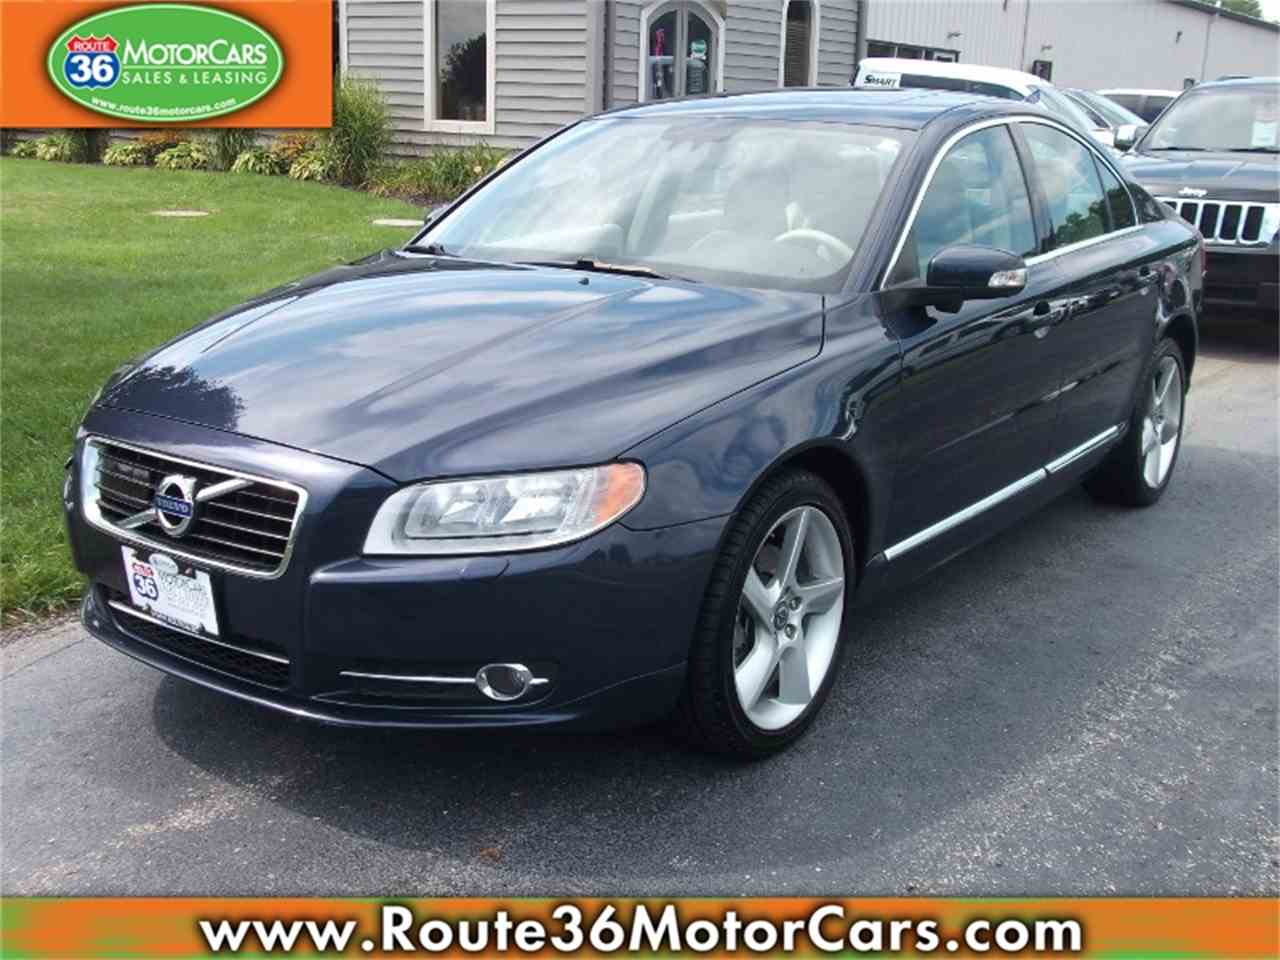 Large Picture of 2010 S80 located in Ohio - $7,975.00 Offered by Route 36 Motor Cars - LUMI